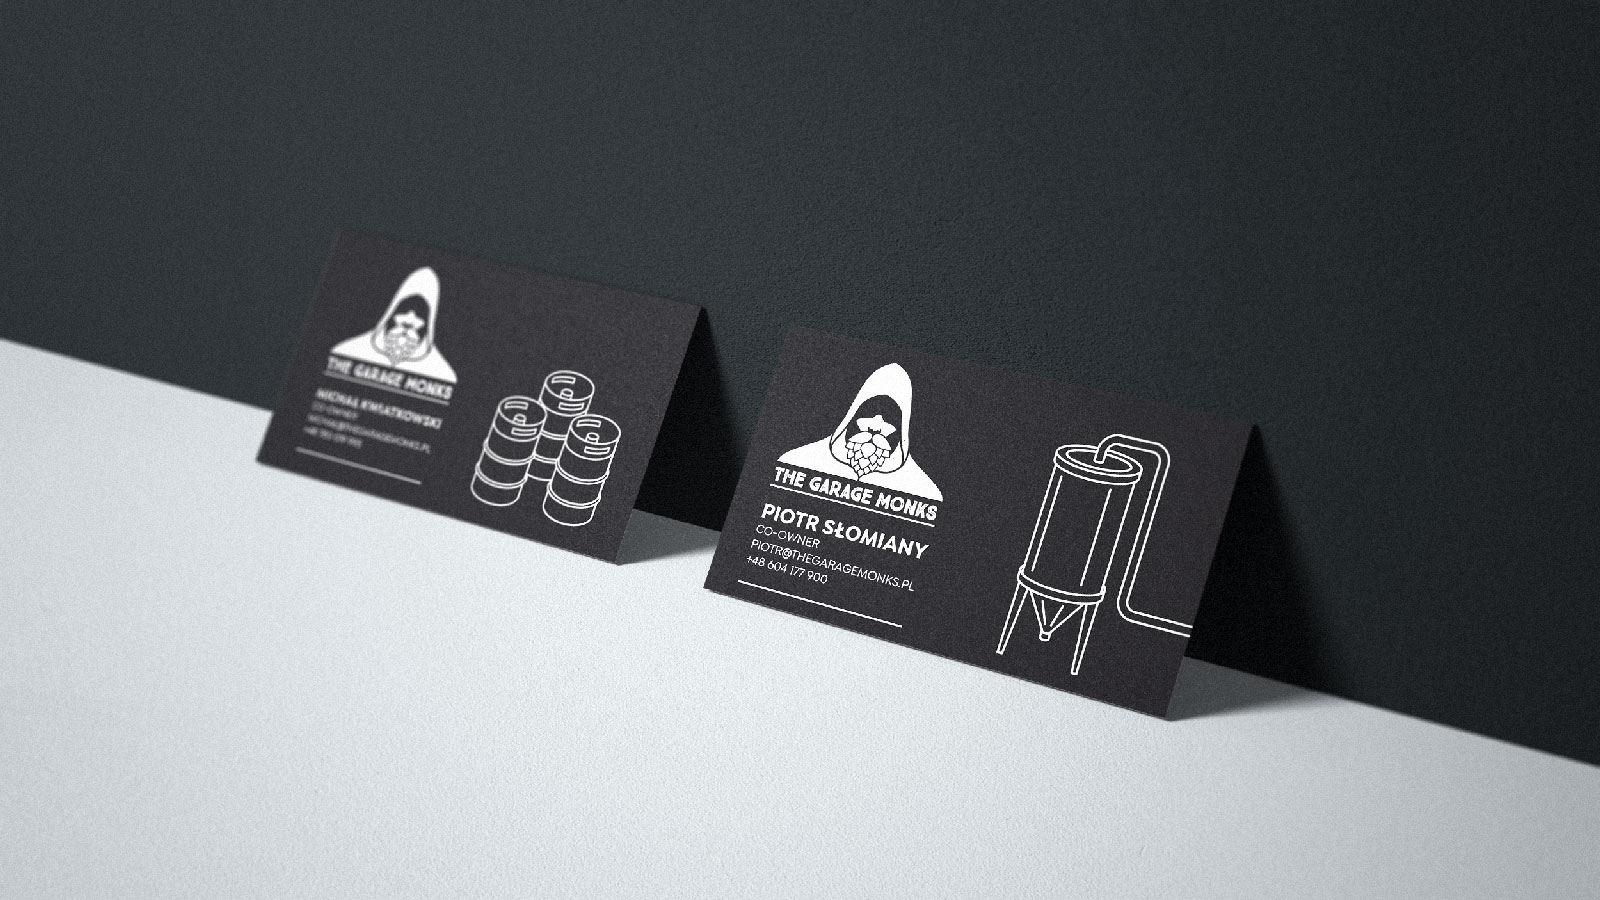 The Garage Monks business cards by Jakub Cichecki